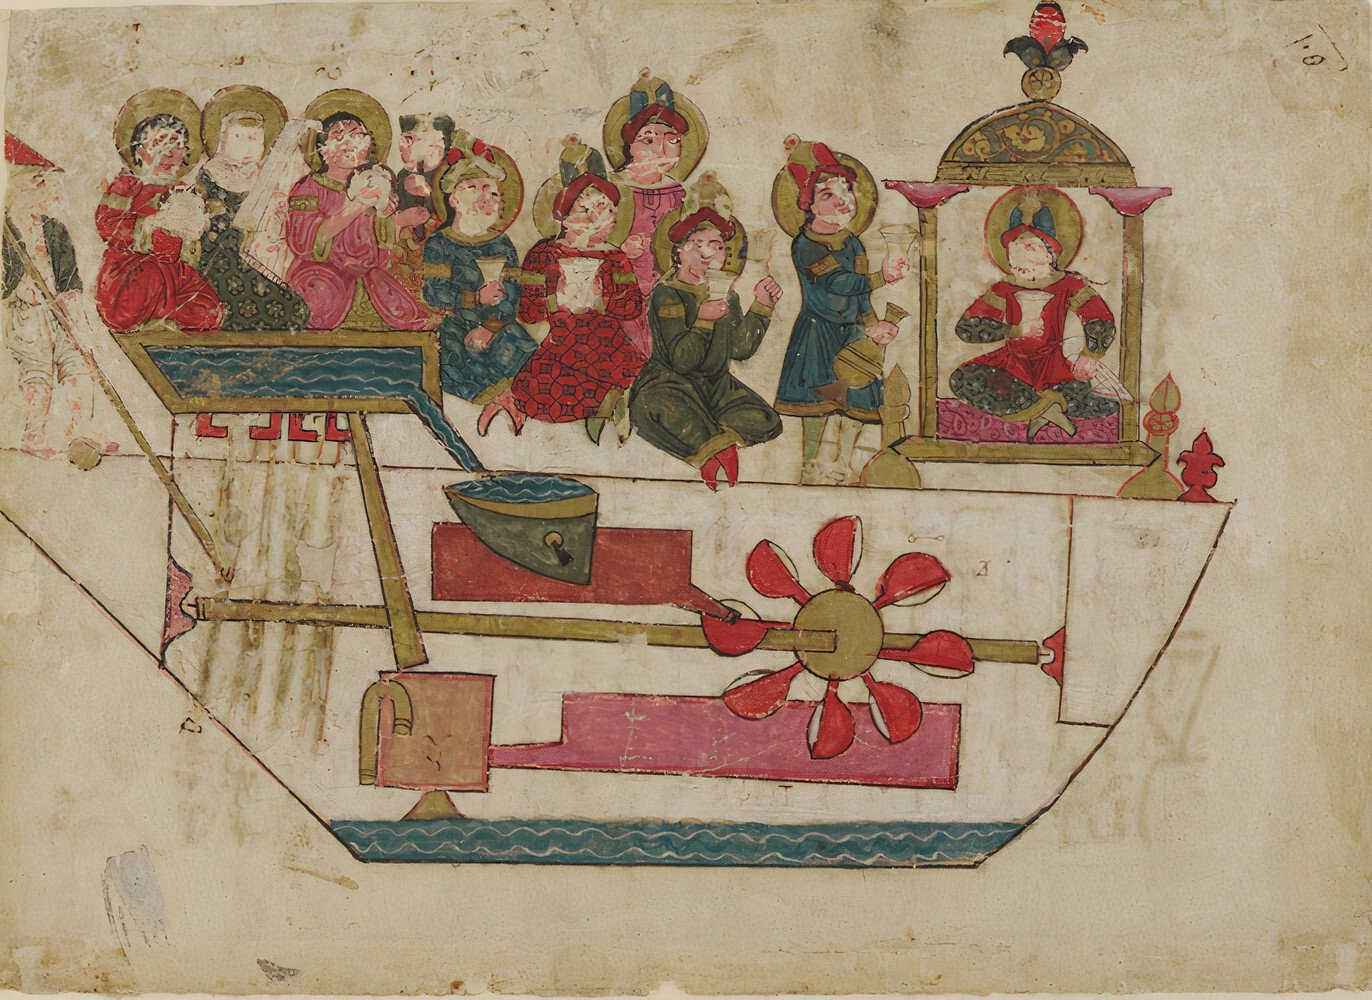 A musical toy from a copy of al-Jazari's treatise on automata